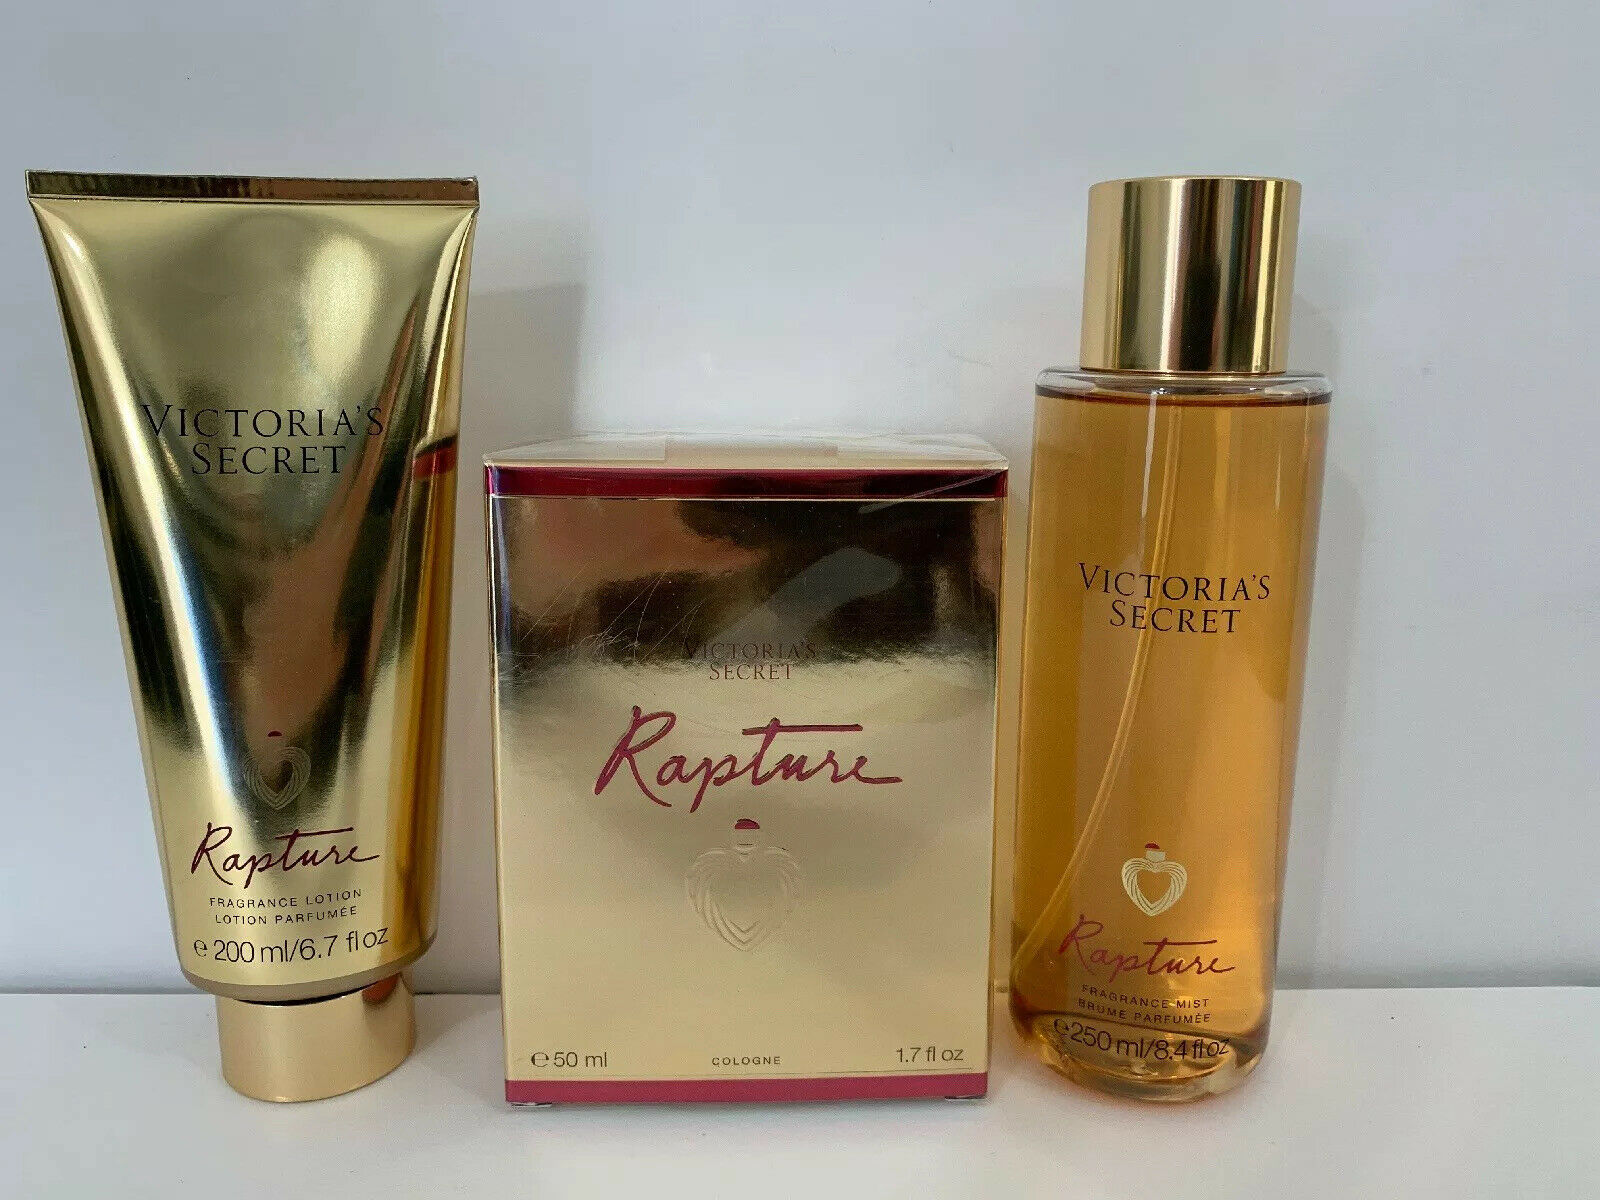 VICTORIA'S SECRET RAPTURE COLOGNE Eau De Perfume 1.7oz, Mist & Lotion Set